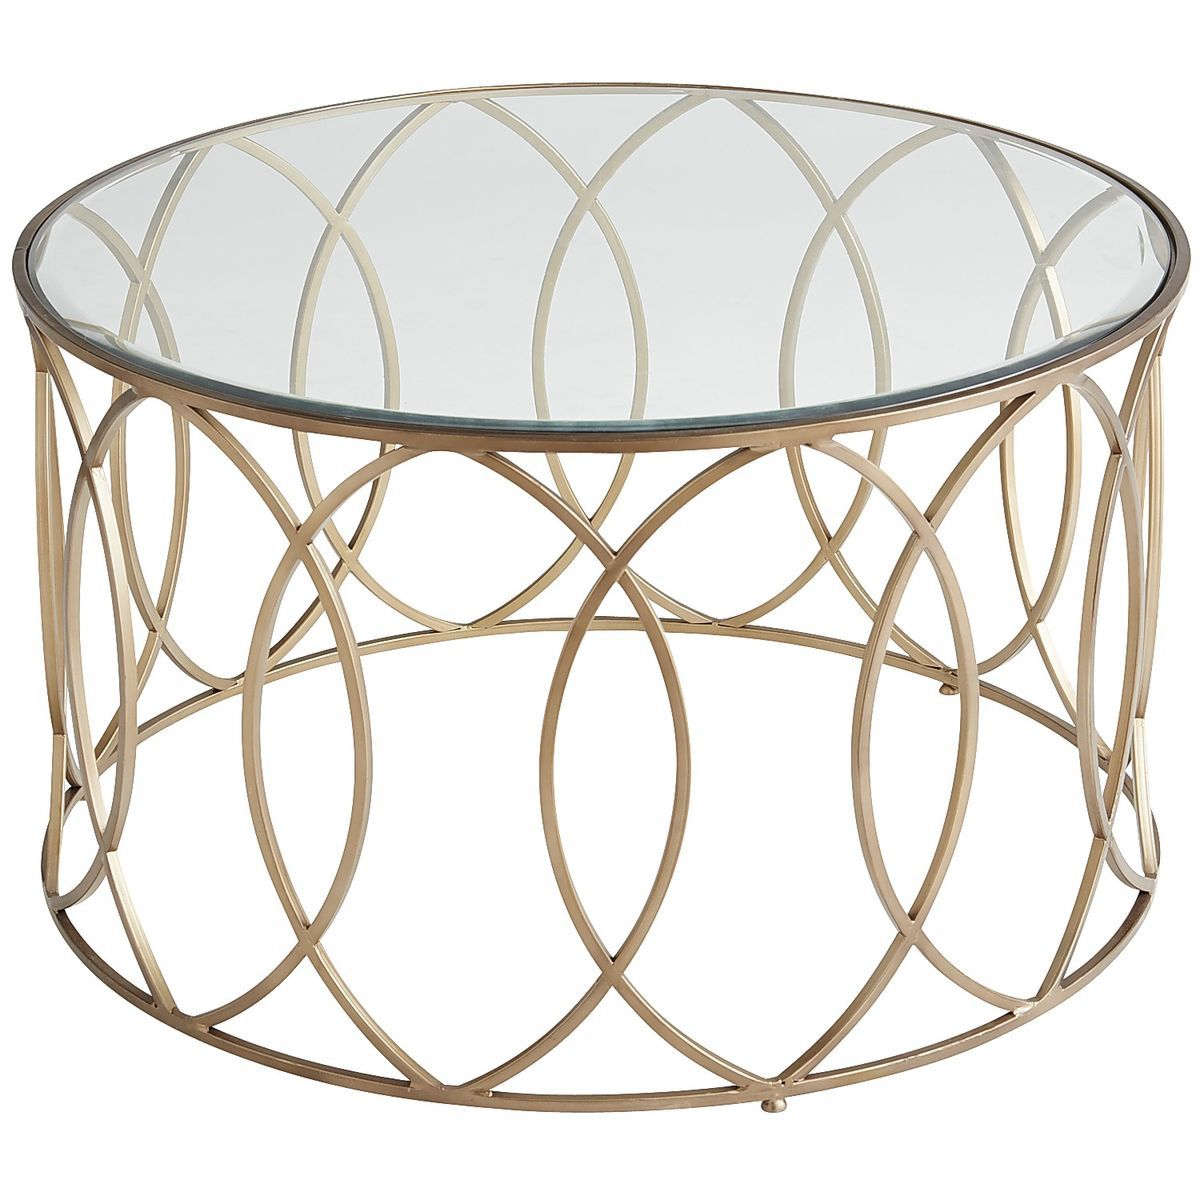 Enjoyable Elana Bronze Iron Round Coffee Table Living Room Accent Pdpeps Interior Chair Design Pdpepsorg